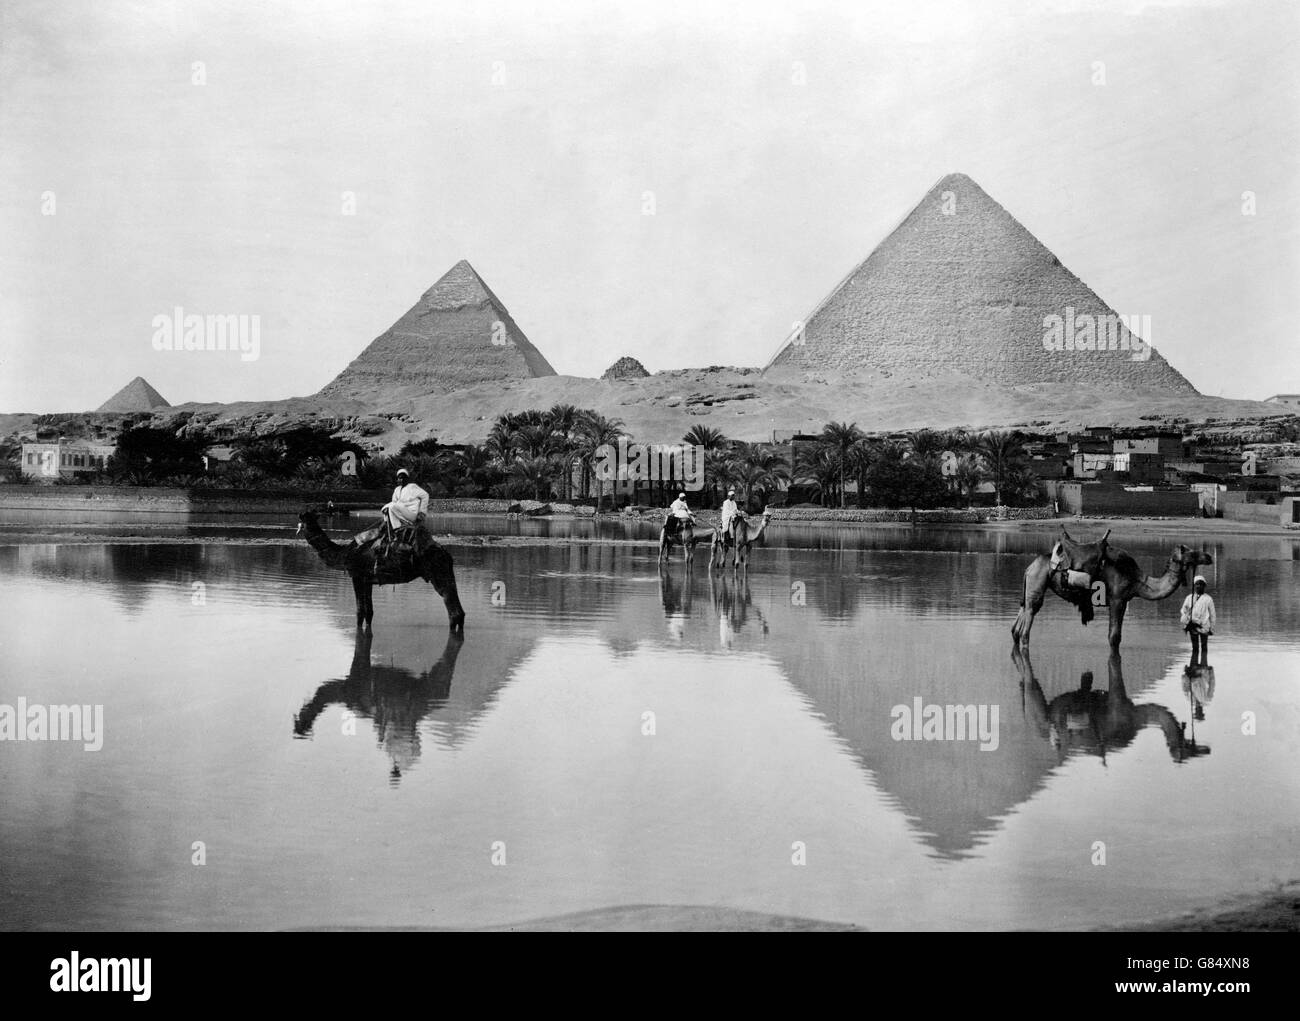 The Pyramids of Giza in the late 19th Century during the flood. Photo taken between 1890 and 1900 by Frank G Carpenter. - Stock Image